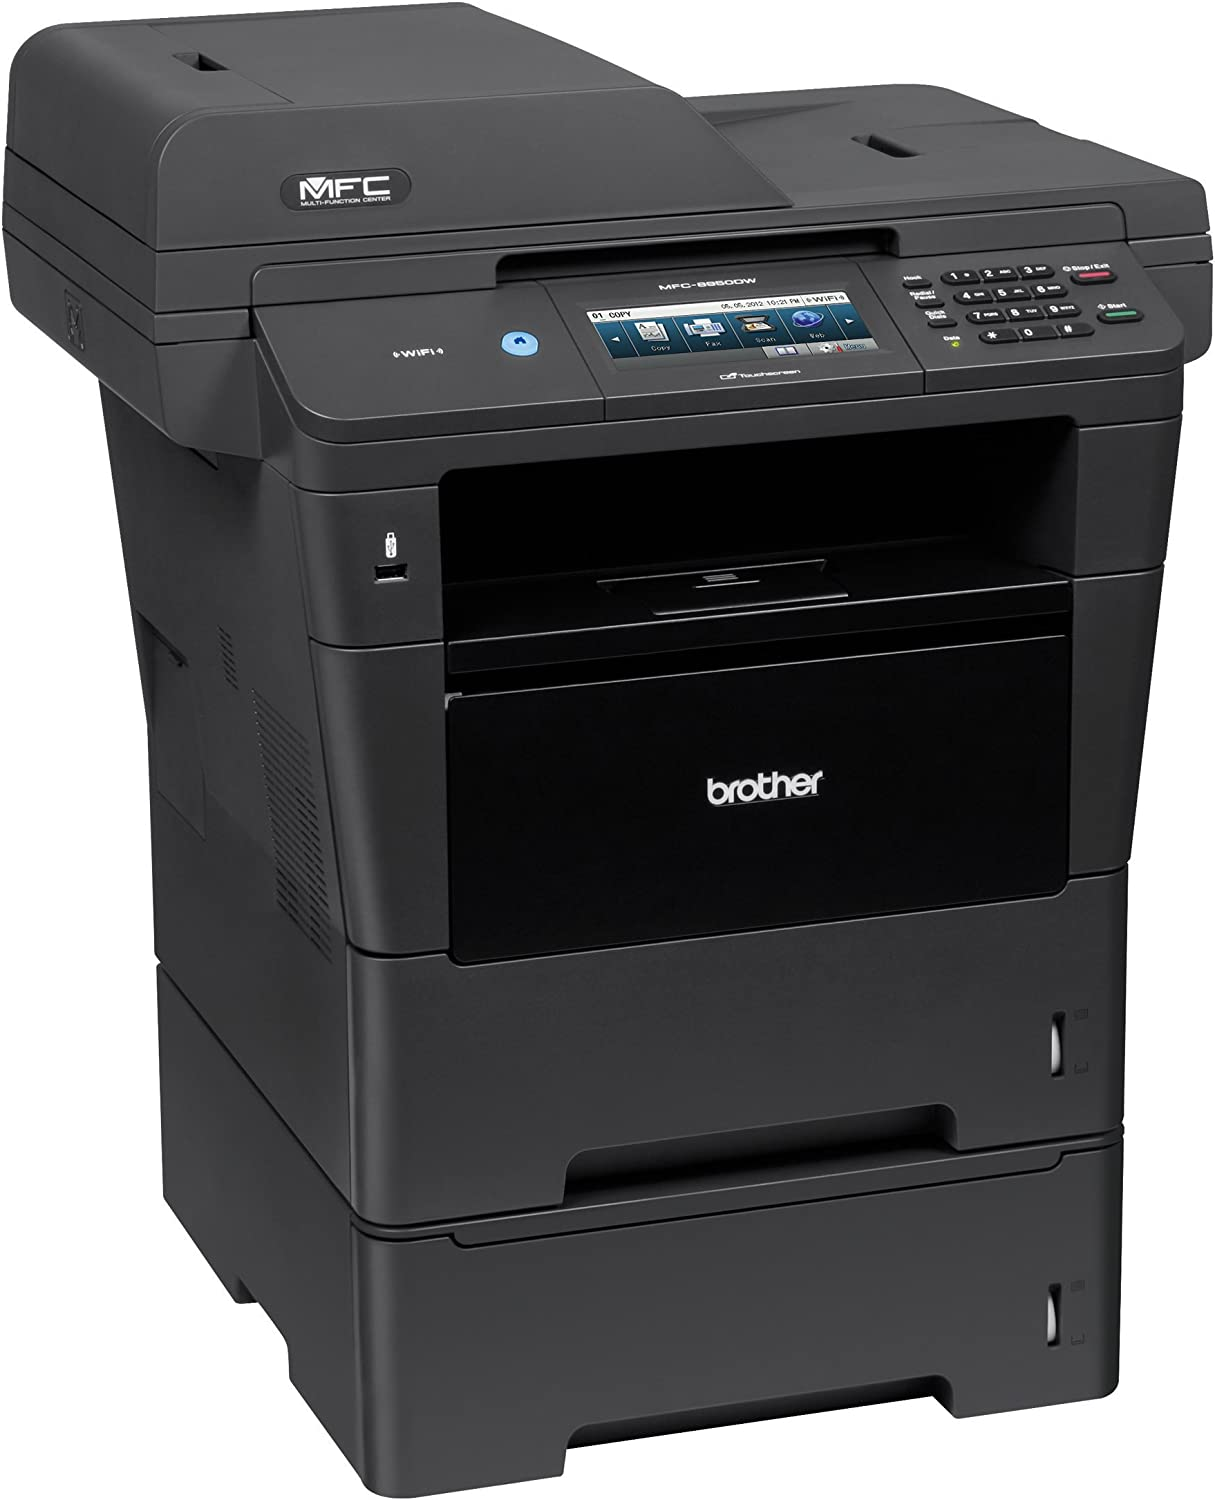 Amazon.com: MFC-8950DWT Wireless All-in-One Laser Printer ...